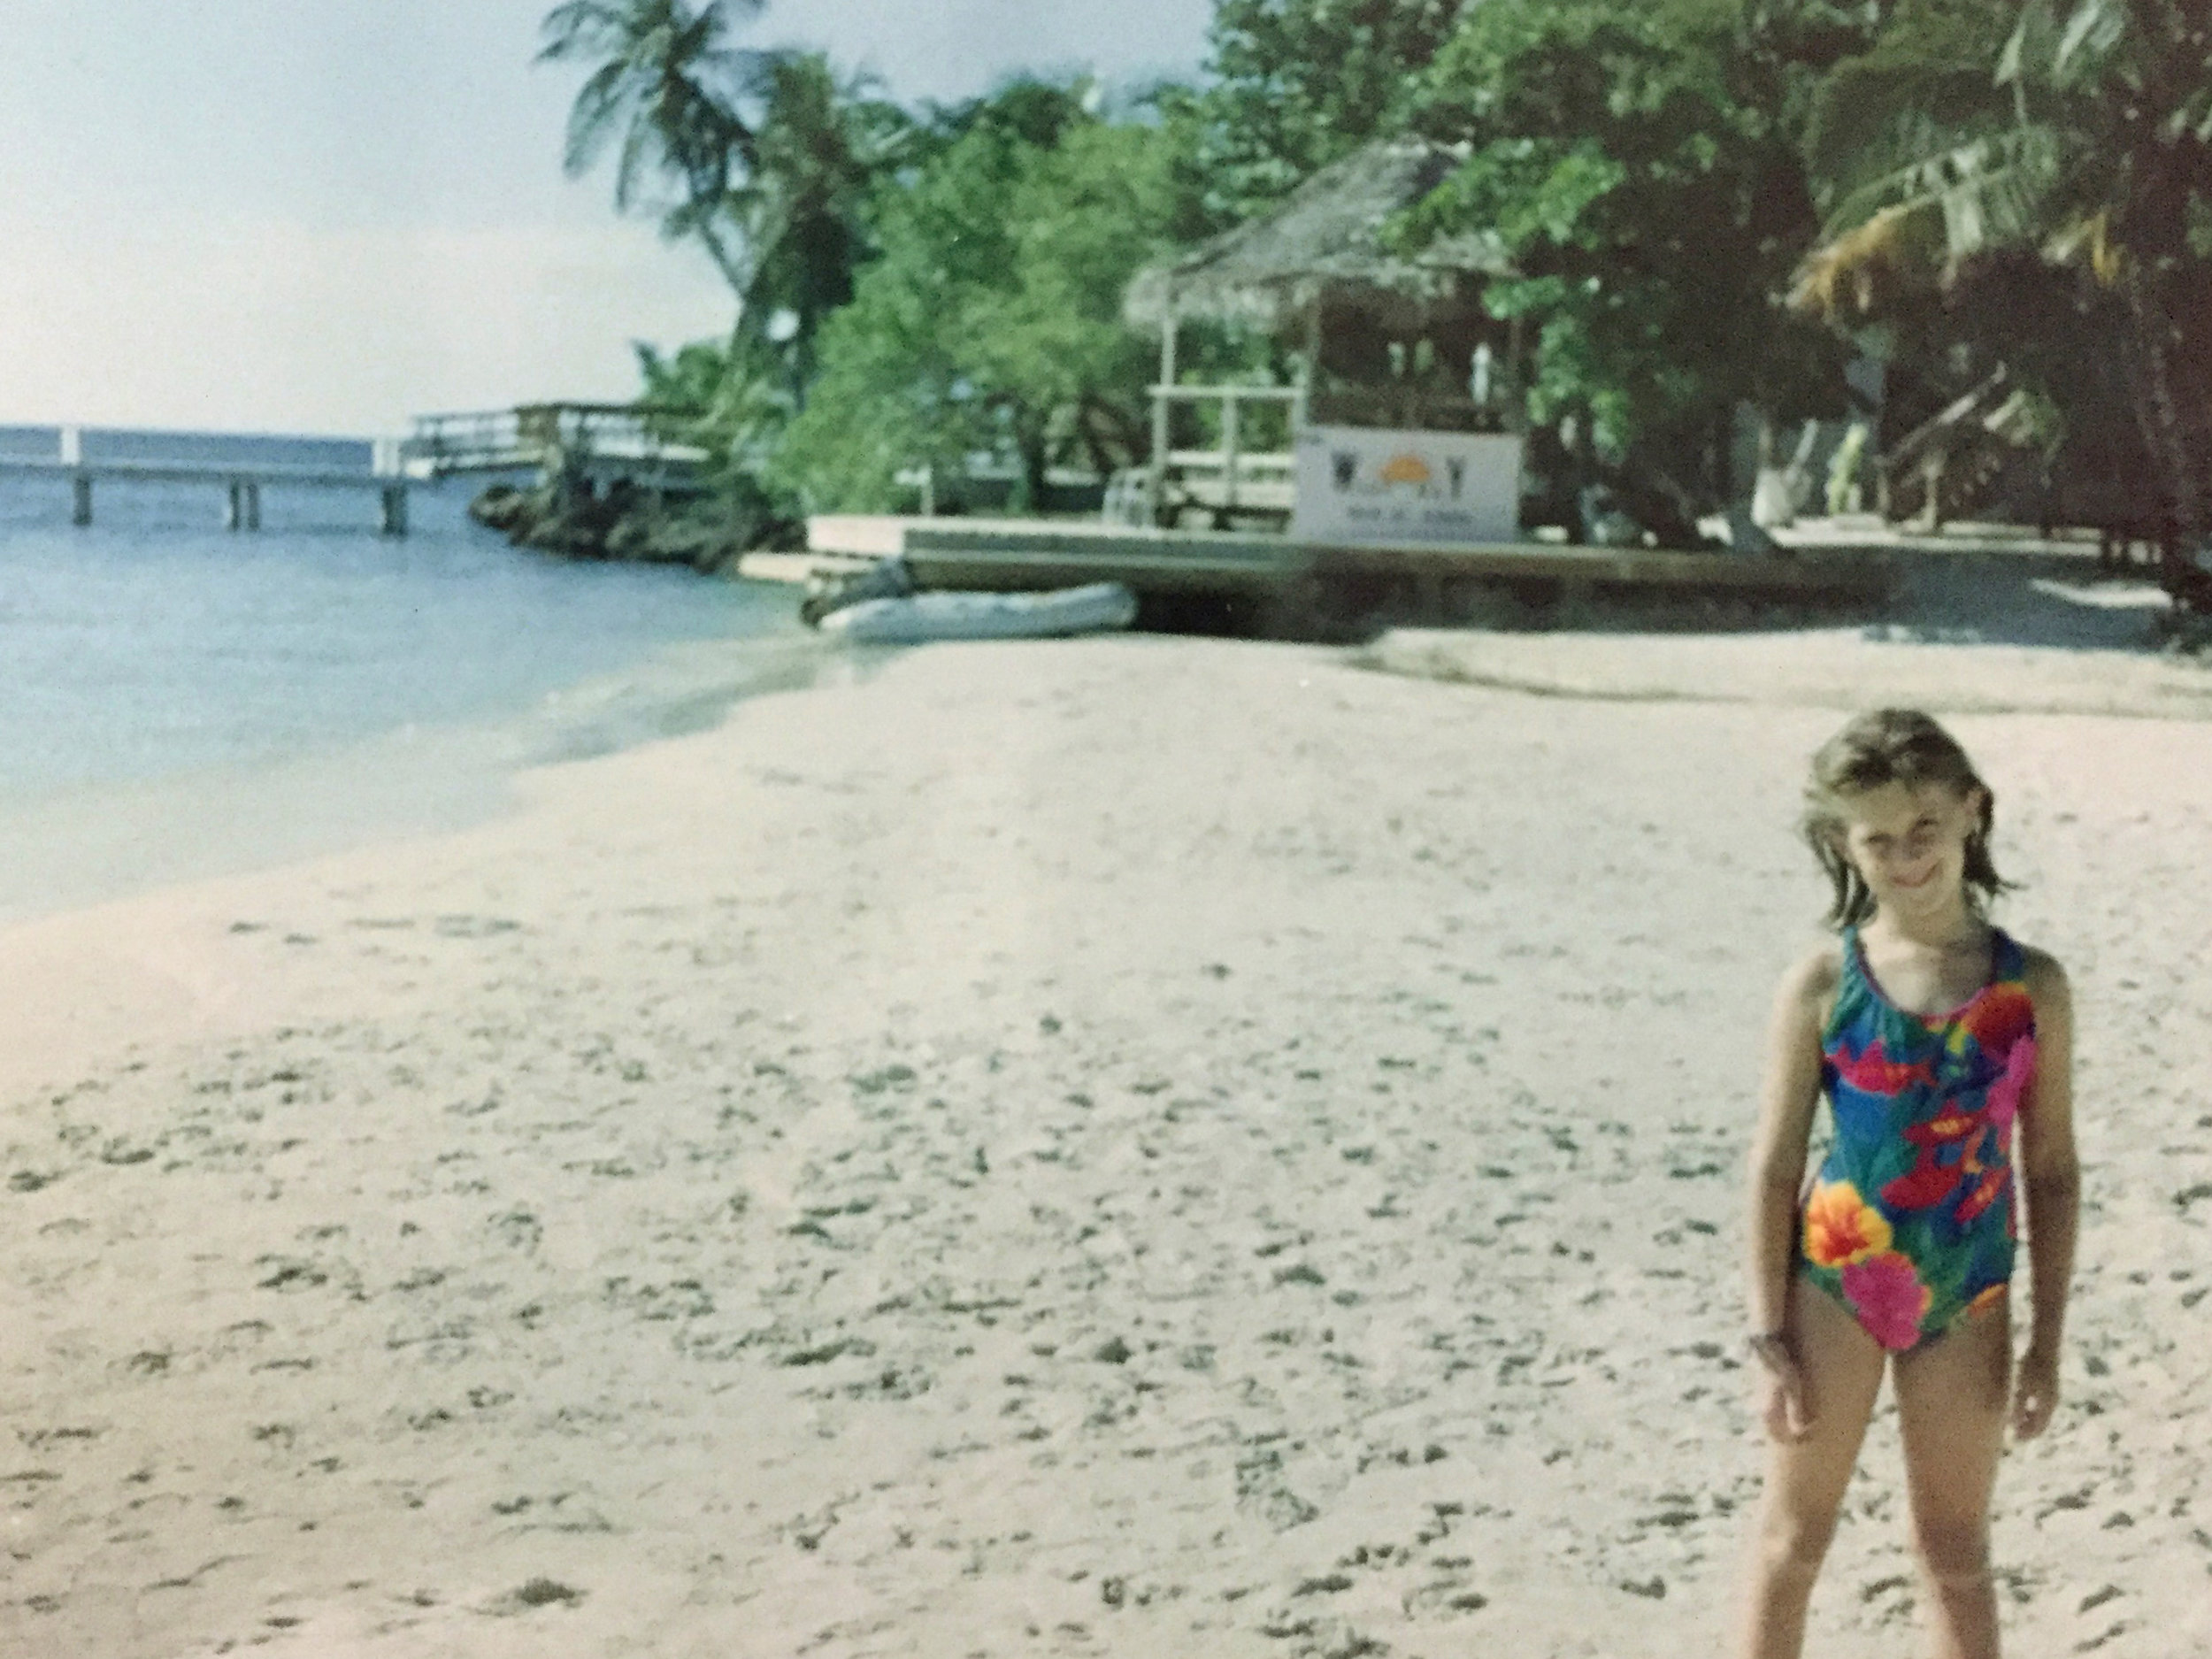 We moved to Honduras when I was 5yrs old. I am pictured above standing on the beach in West End on the island of Roatán.